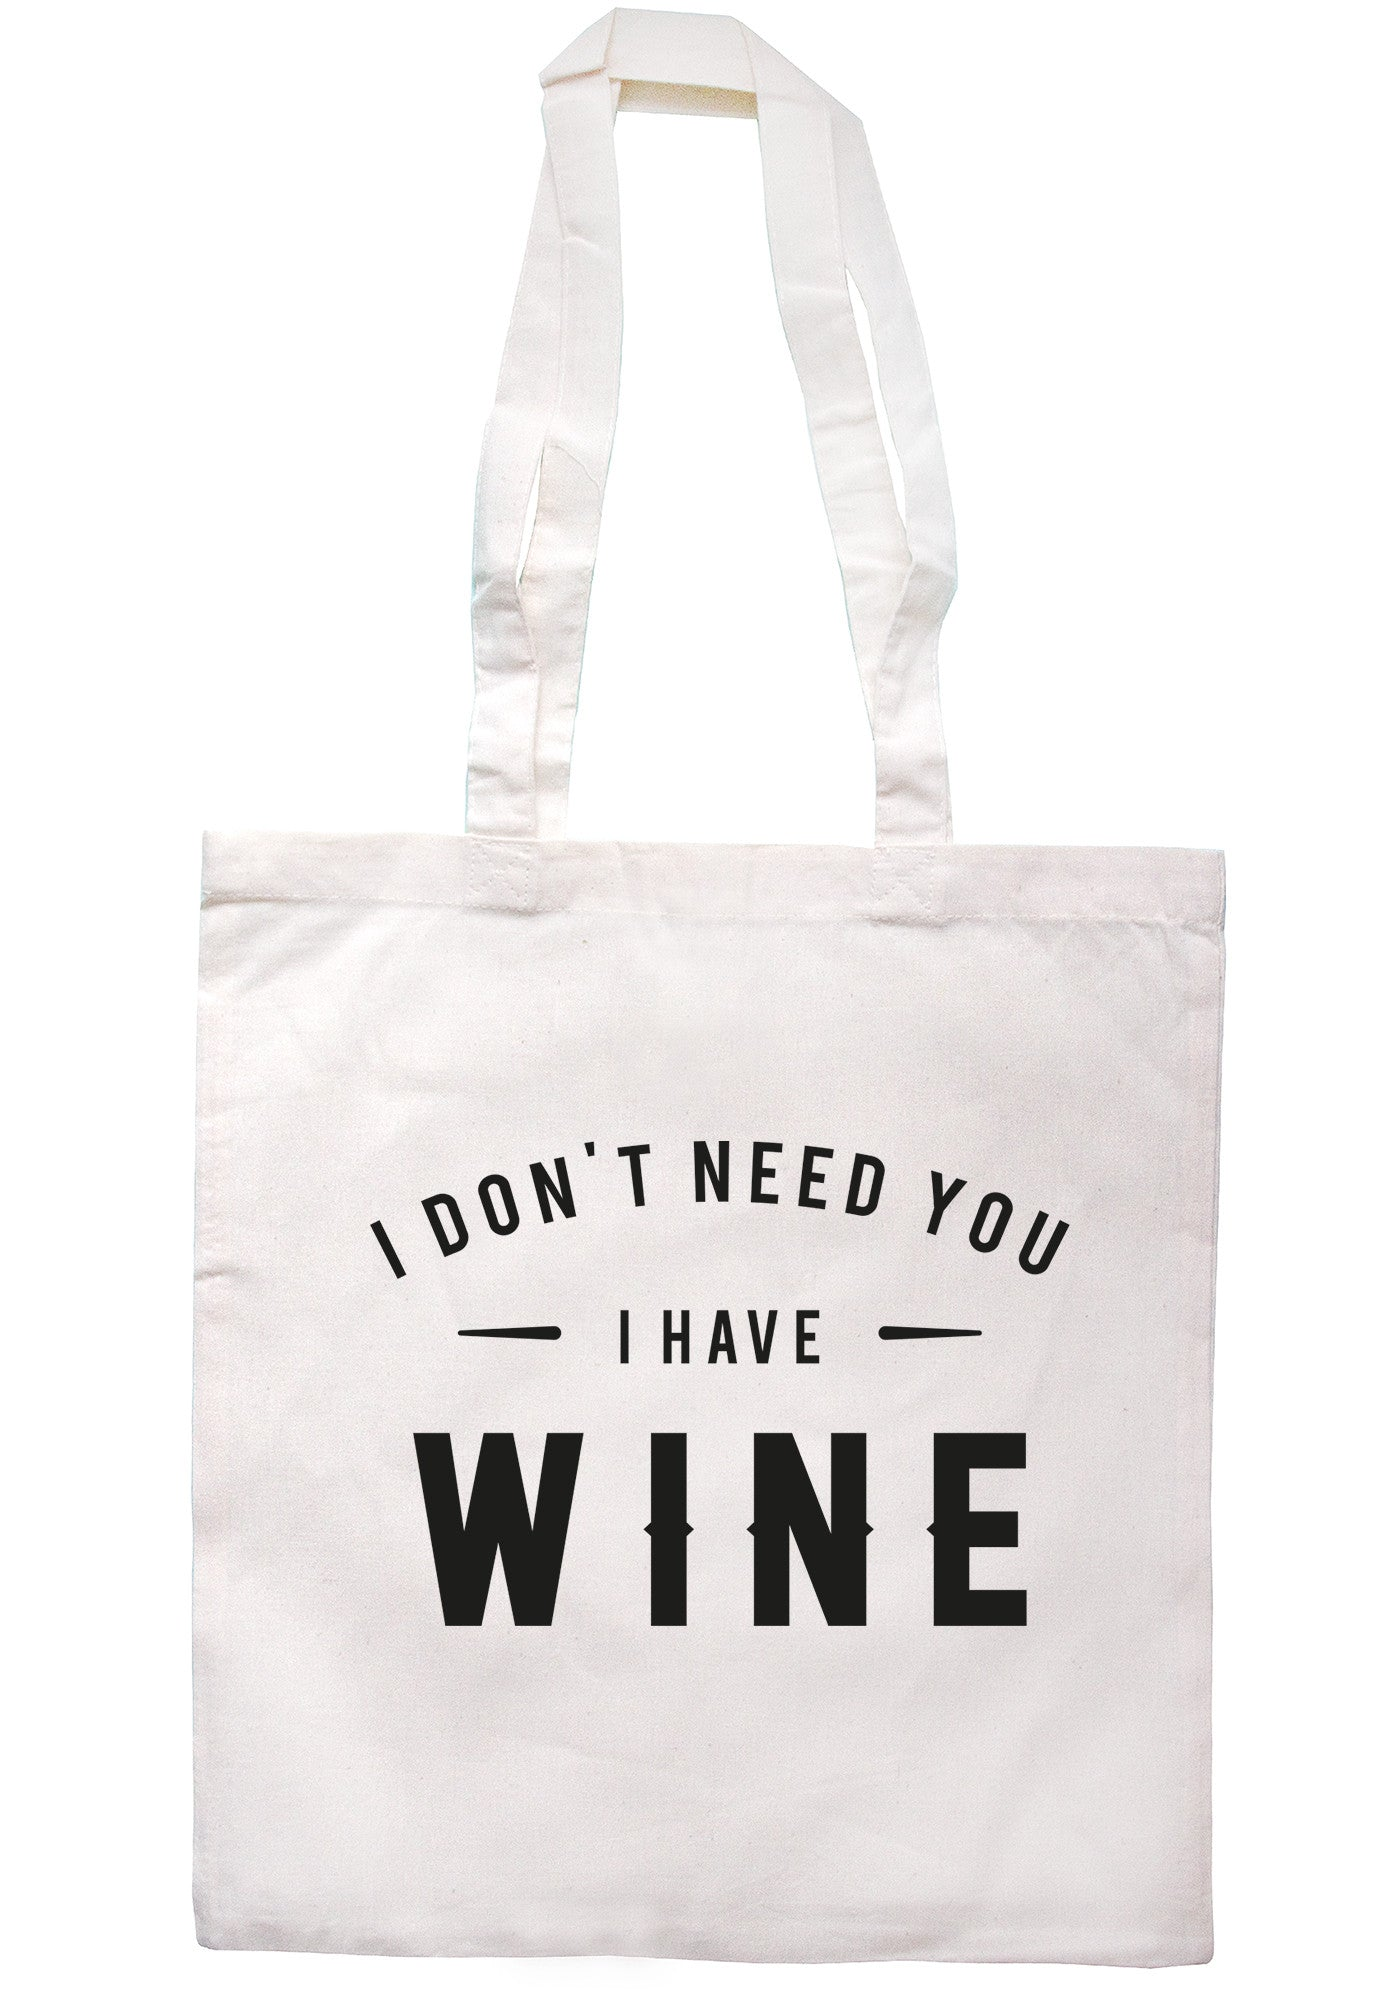 I Don't Need You I Have Wine Tote Bag TB0584 - Illustrated Identity Ltd.